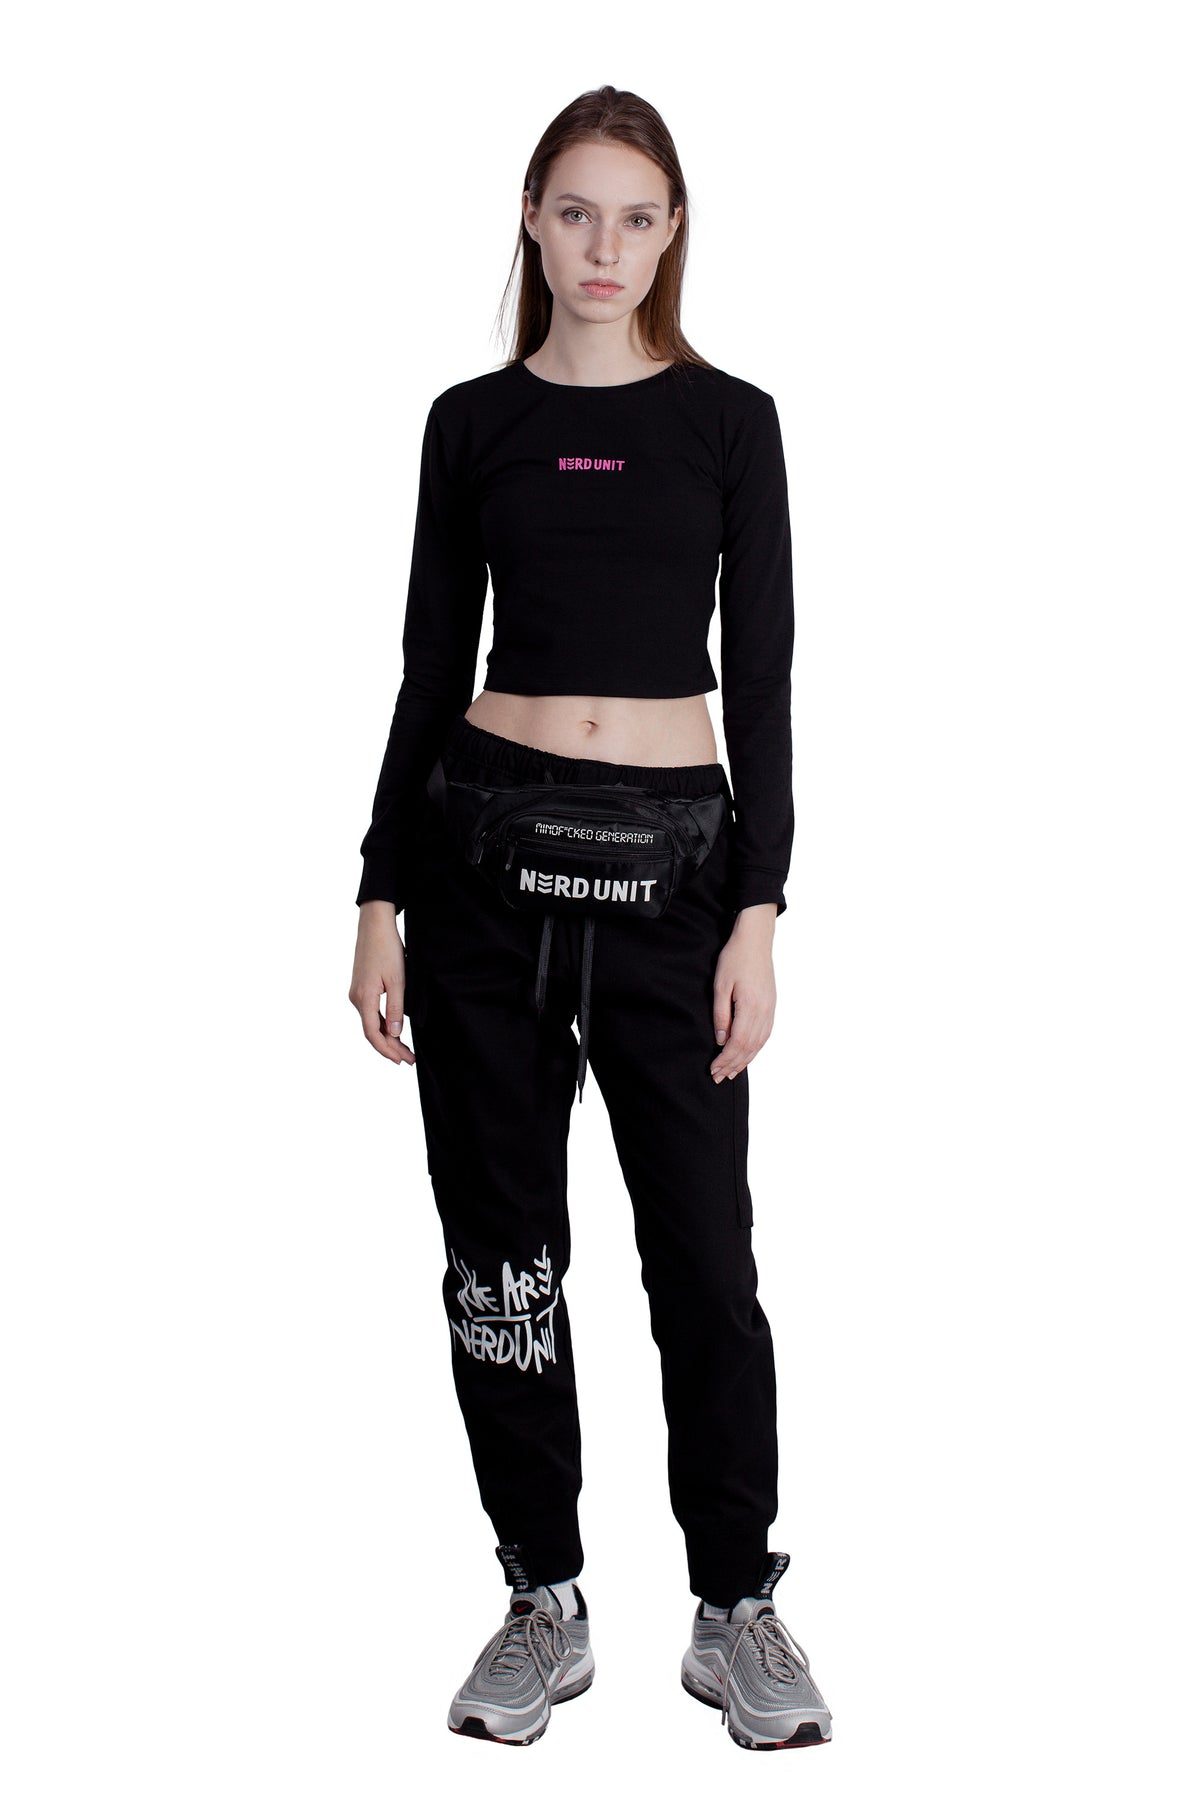 EMBLEM LONG SLEEVES CROP TOP